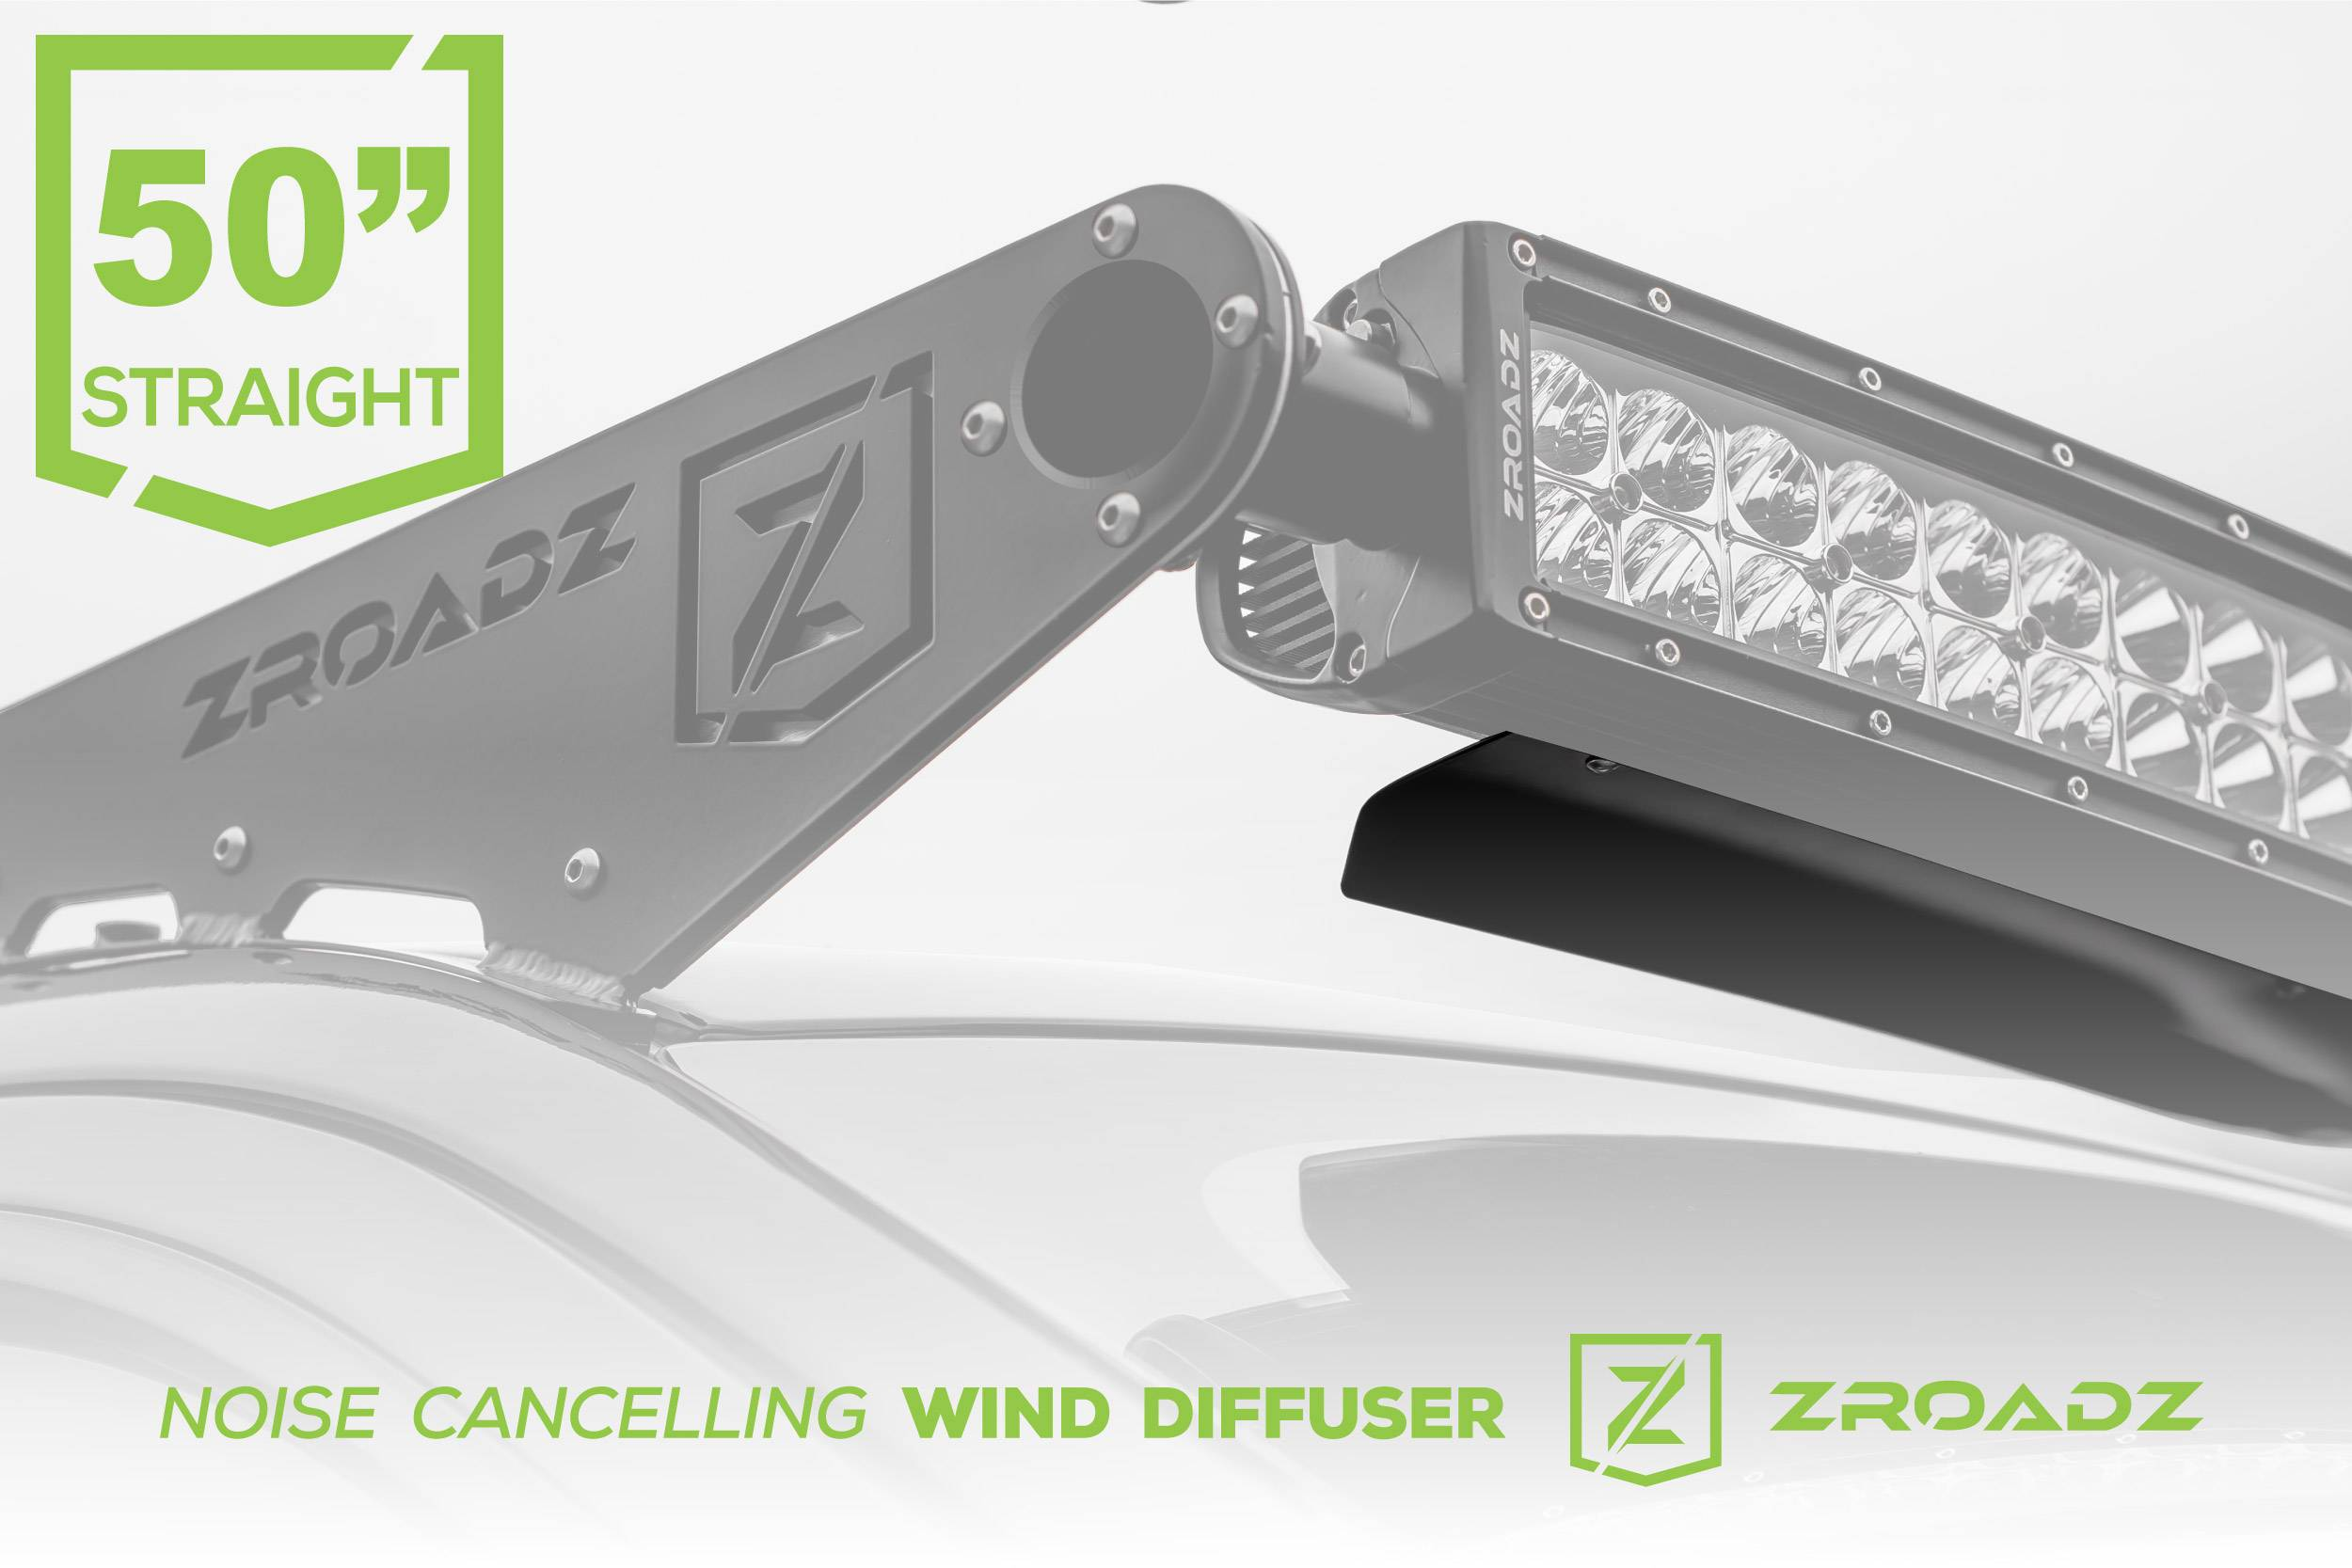 ZROADZ                                             - Noise Cancelling Wind Diffuser for 50 Inch Straight LED Light Bar - PN #Z330050S